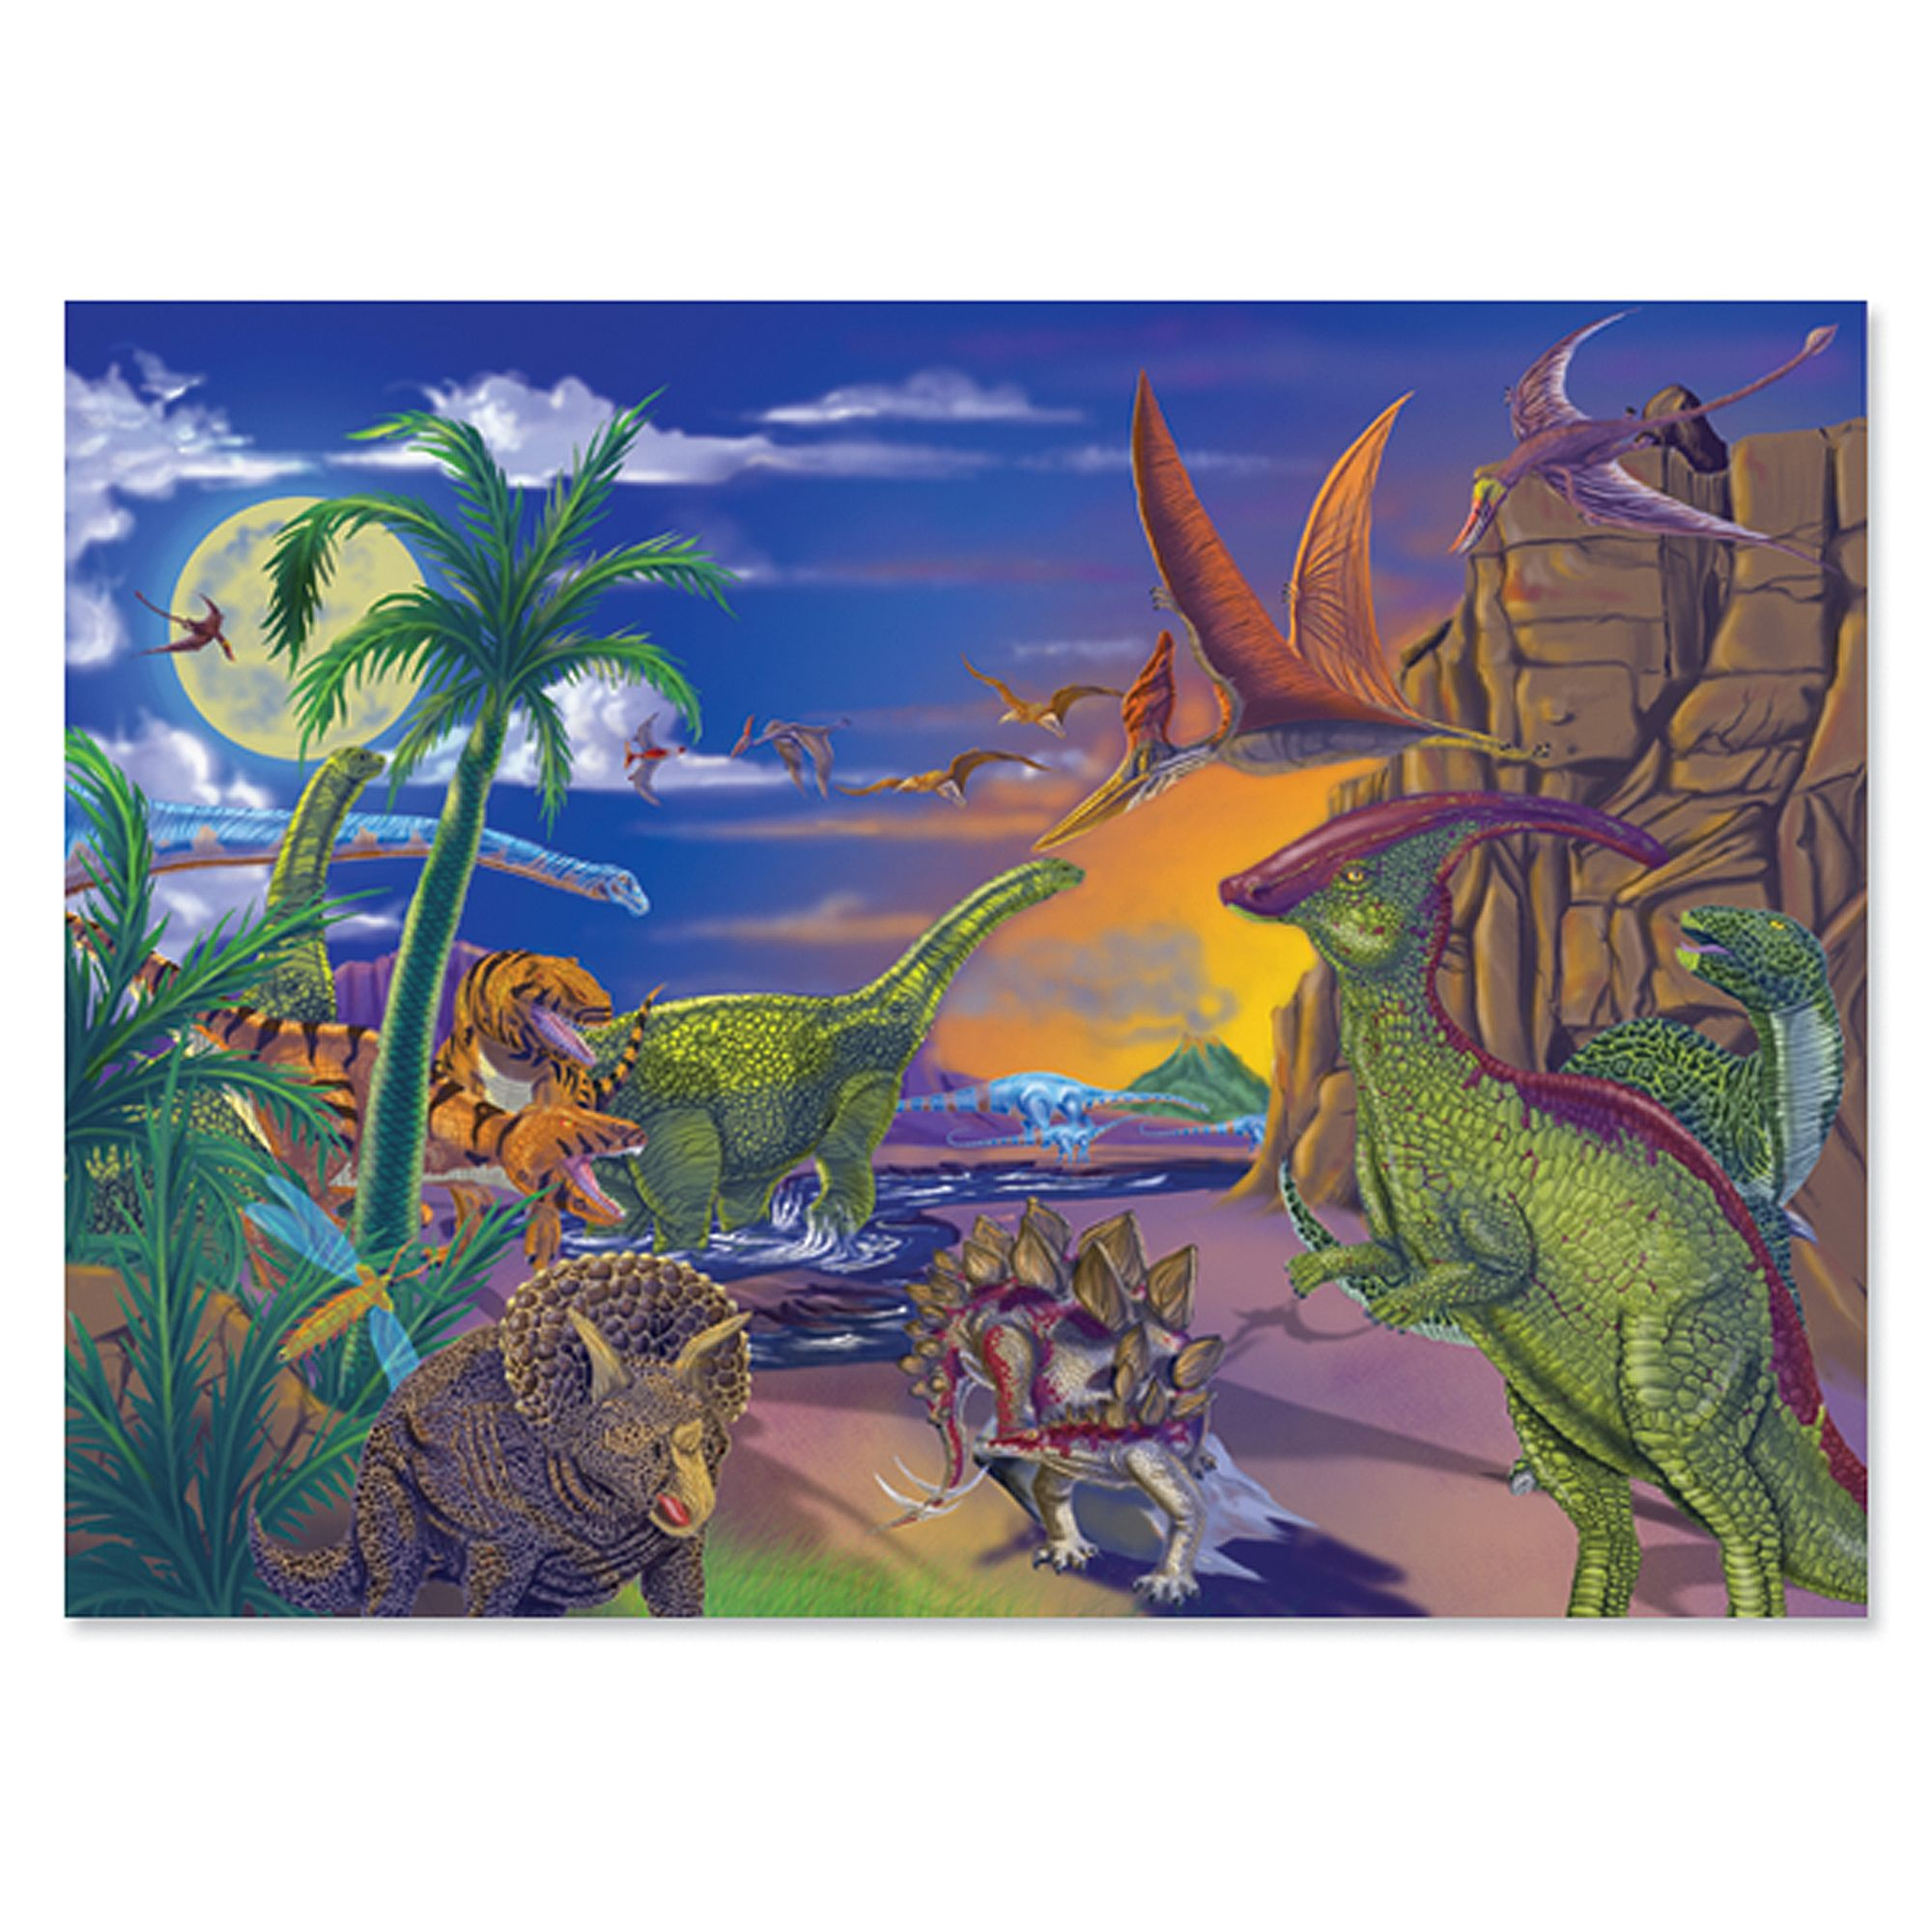 Land of Dinosaurs Jigsaw Puzzle  60 Pieces